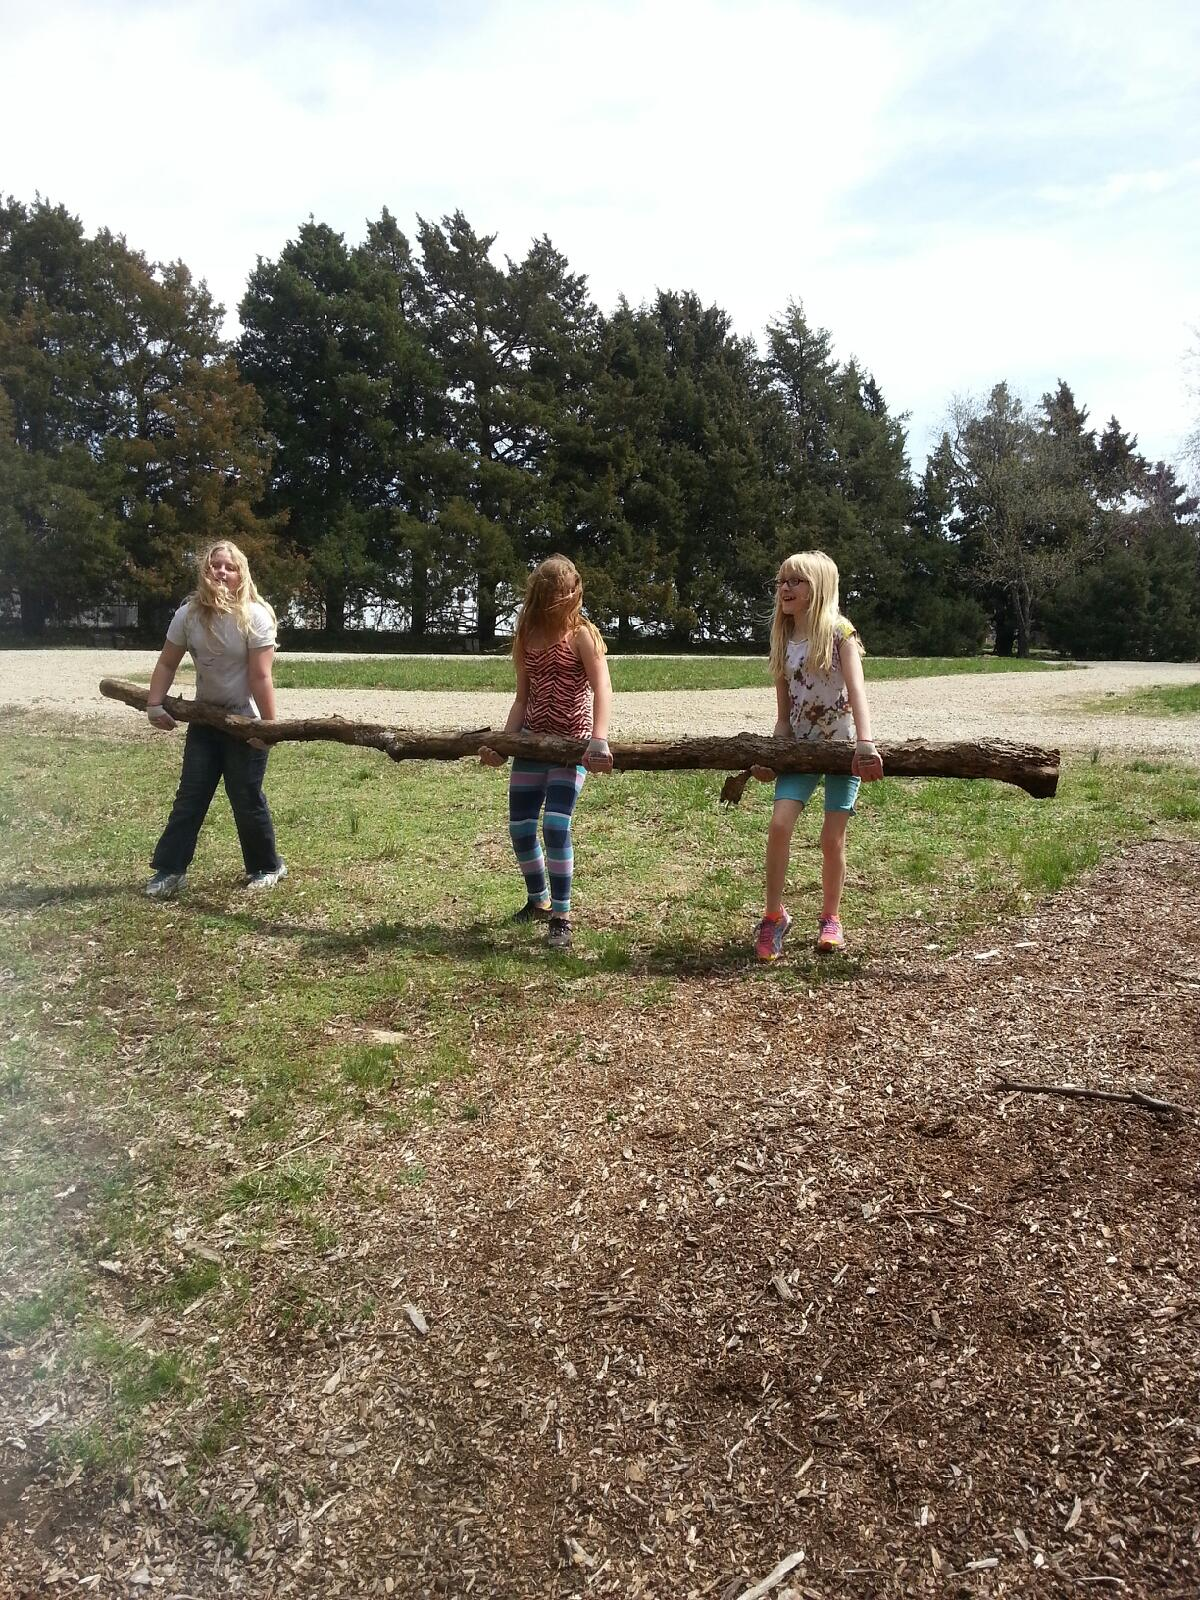 A photo of three girls carrying a large tree limb.